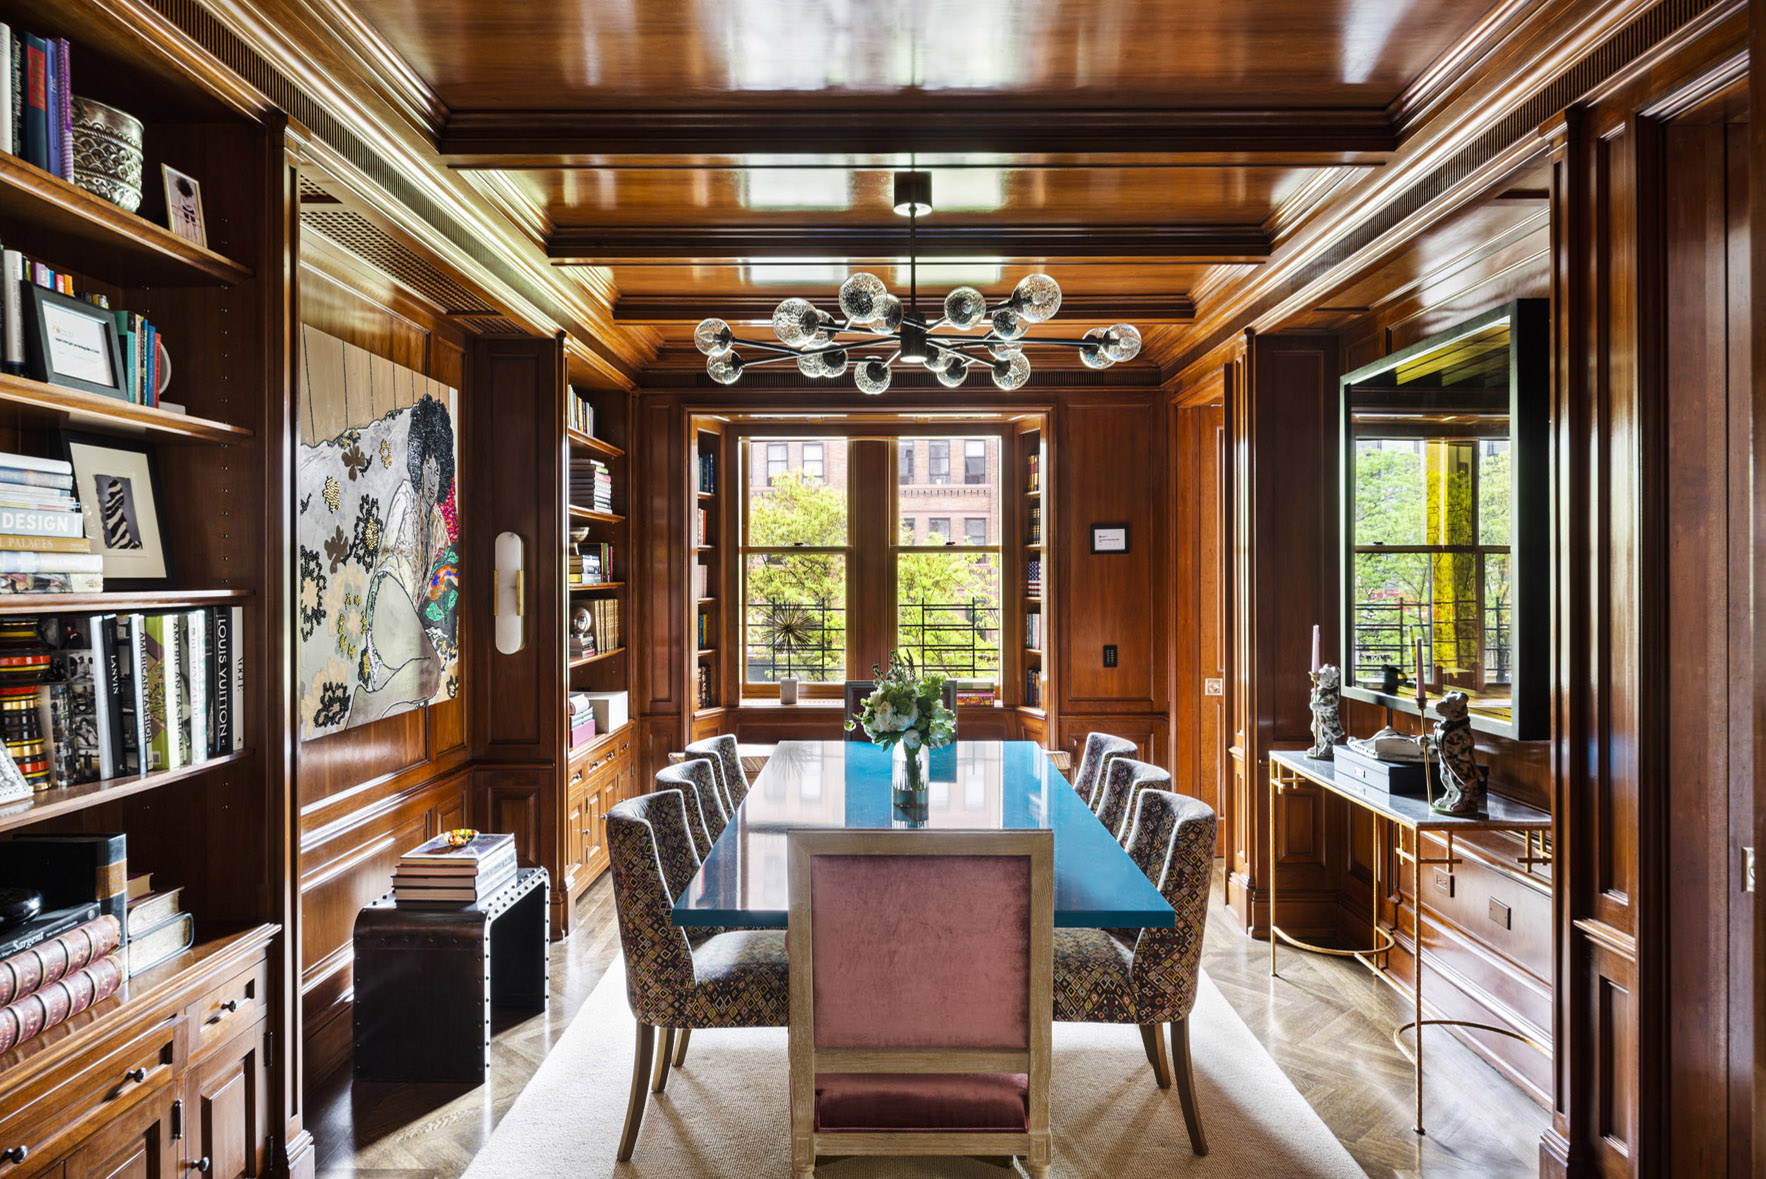 grand library/dining room inside a luxurious upper west side co-op in manhattan